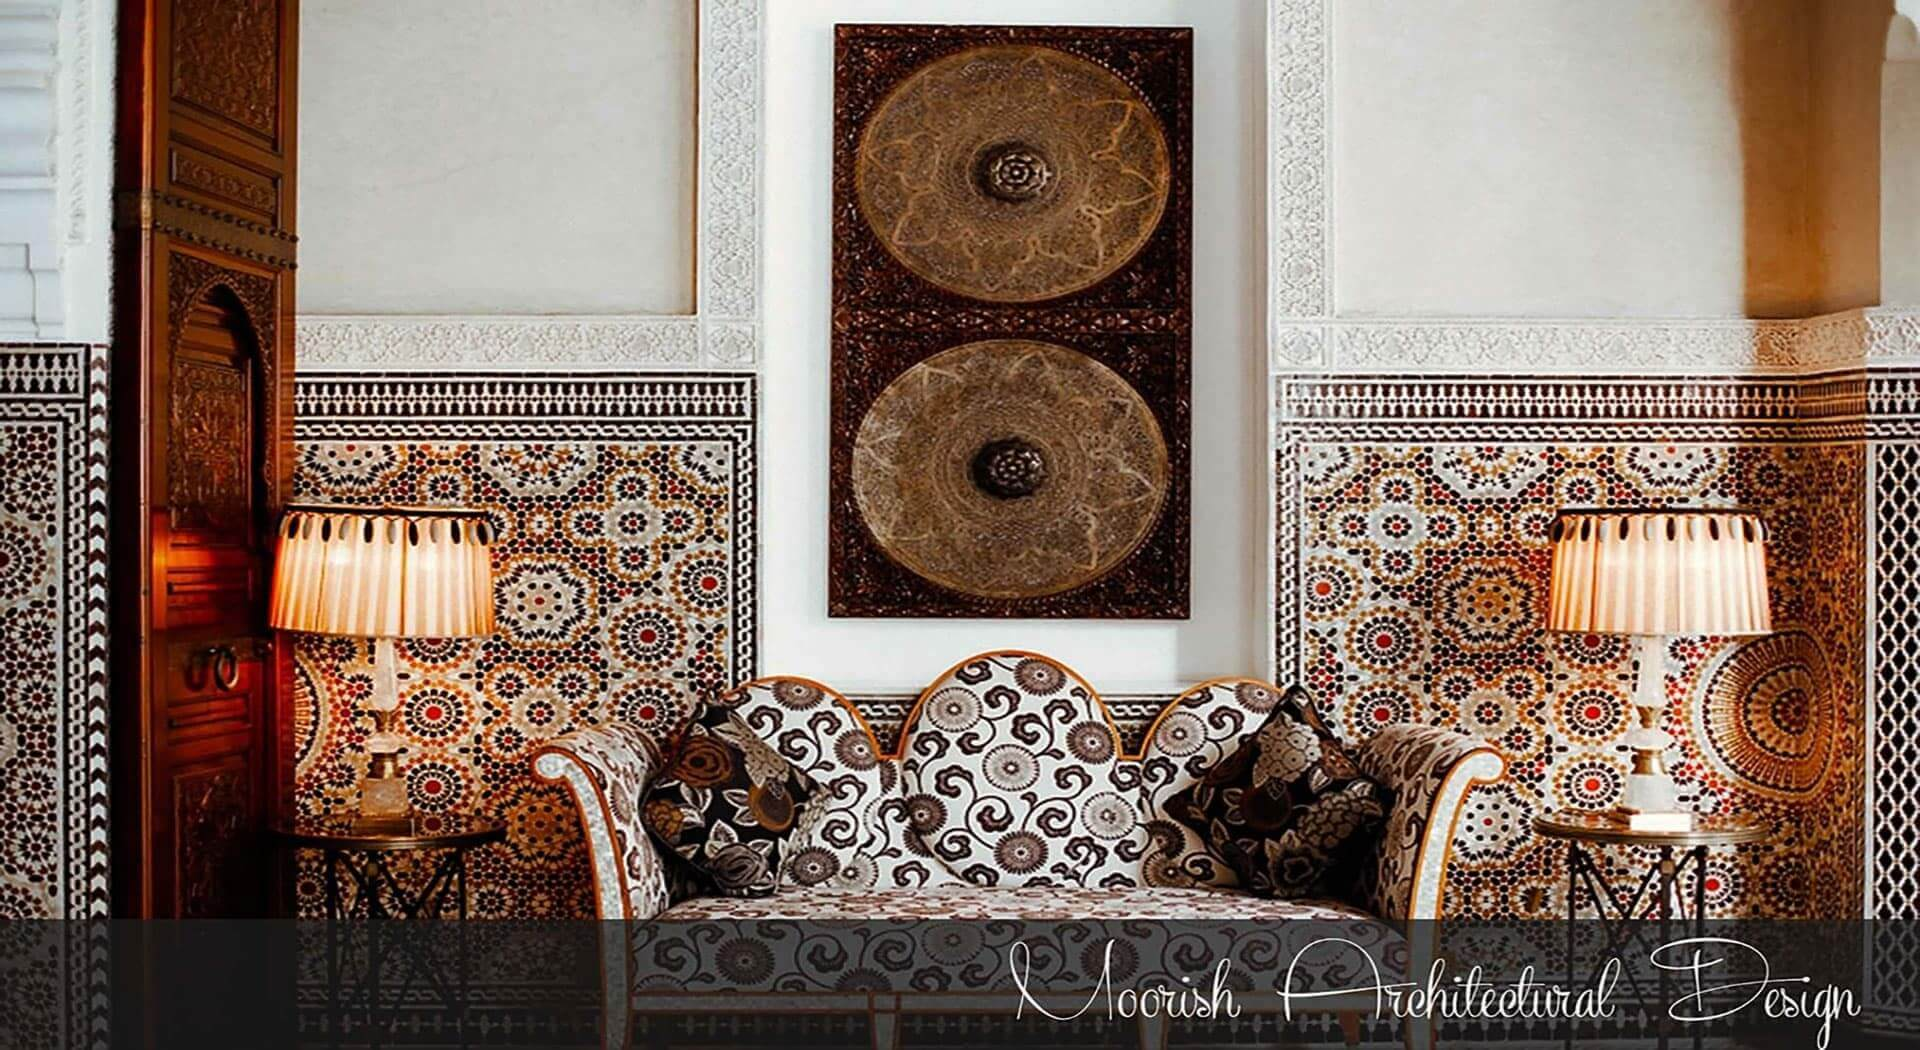 7e1c12e99c3422d11c0d8e355f250d799c0b533b_moroccan_wall_tiles_ideas Ideas For Traditional Rustic Kitchen on traditional dining room, traditional white kitchen ideas, traditional kitchen countertops, montana kitchen ideas, traditional kitchen remodel ideas, traditional bedding ideas, traditional kitchen remodeling ideas, traditional rustic design, traditional living room, traditional colonial kitchen ideas, traditional kitchen decorating ideas, traditional beach kitchen ideas, traditional rustic decorating, traditional bedroom, traditional kitchen design, traditional kitchen cabinets, traditional blue kitchen ideas,